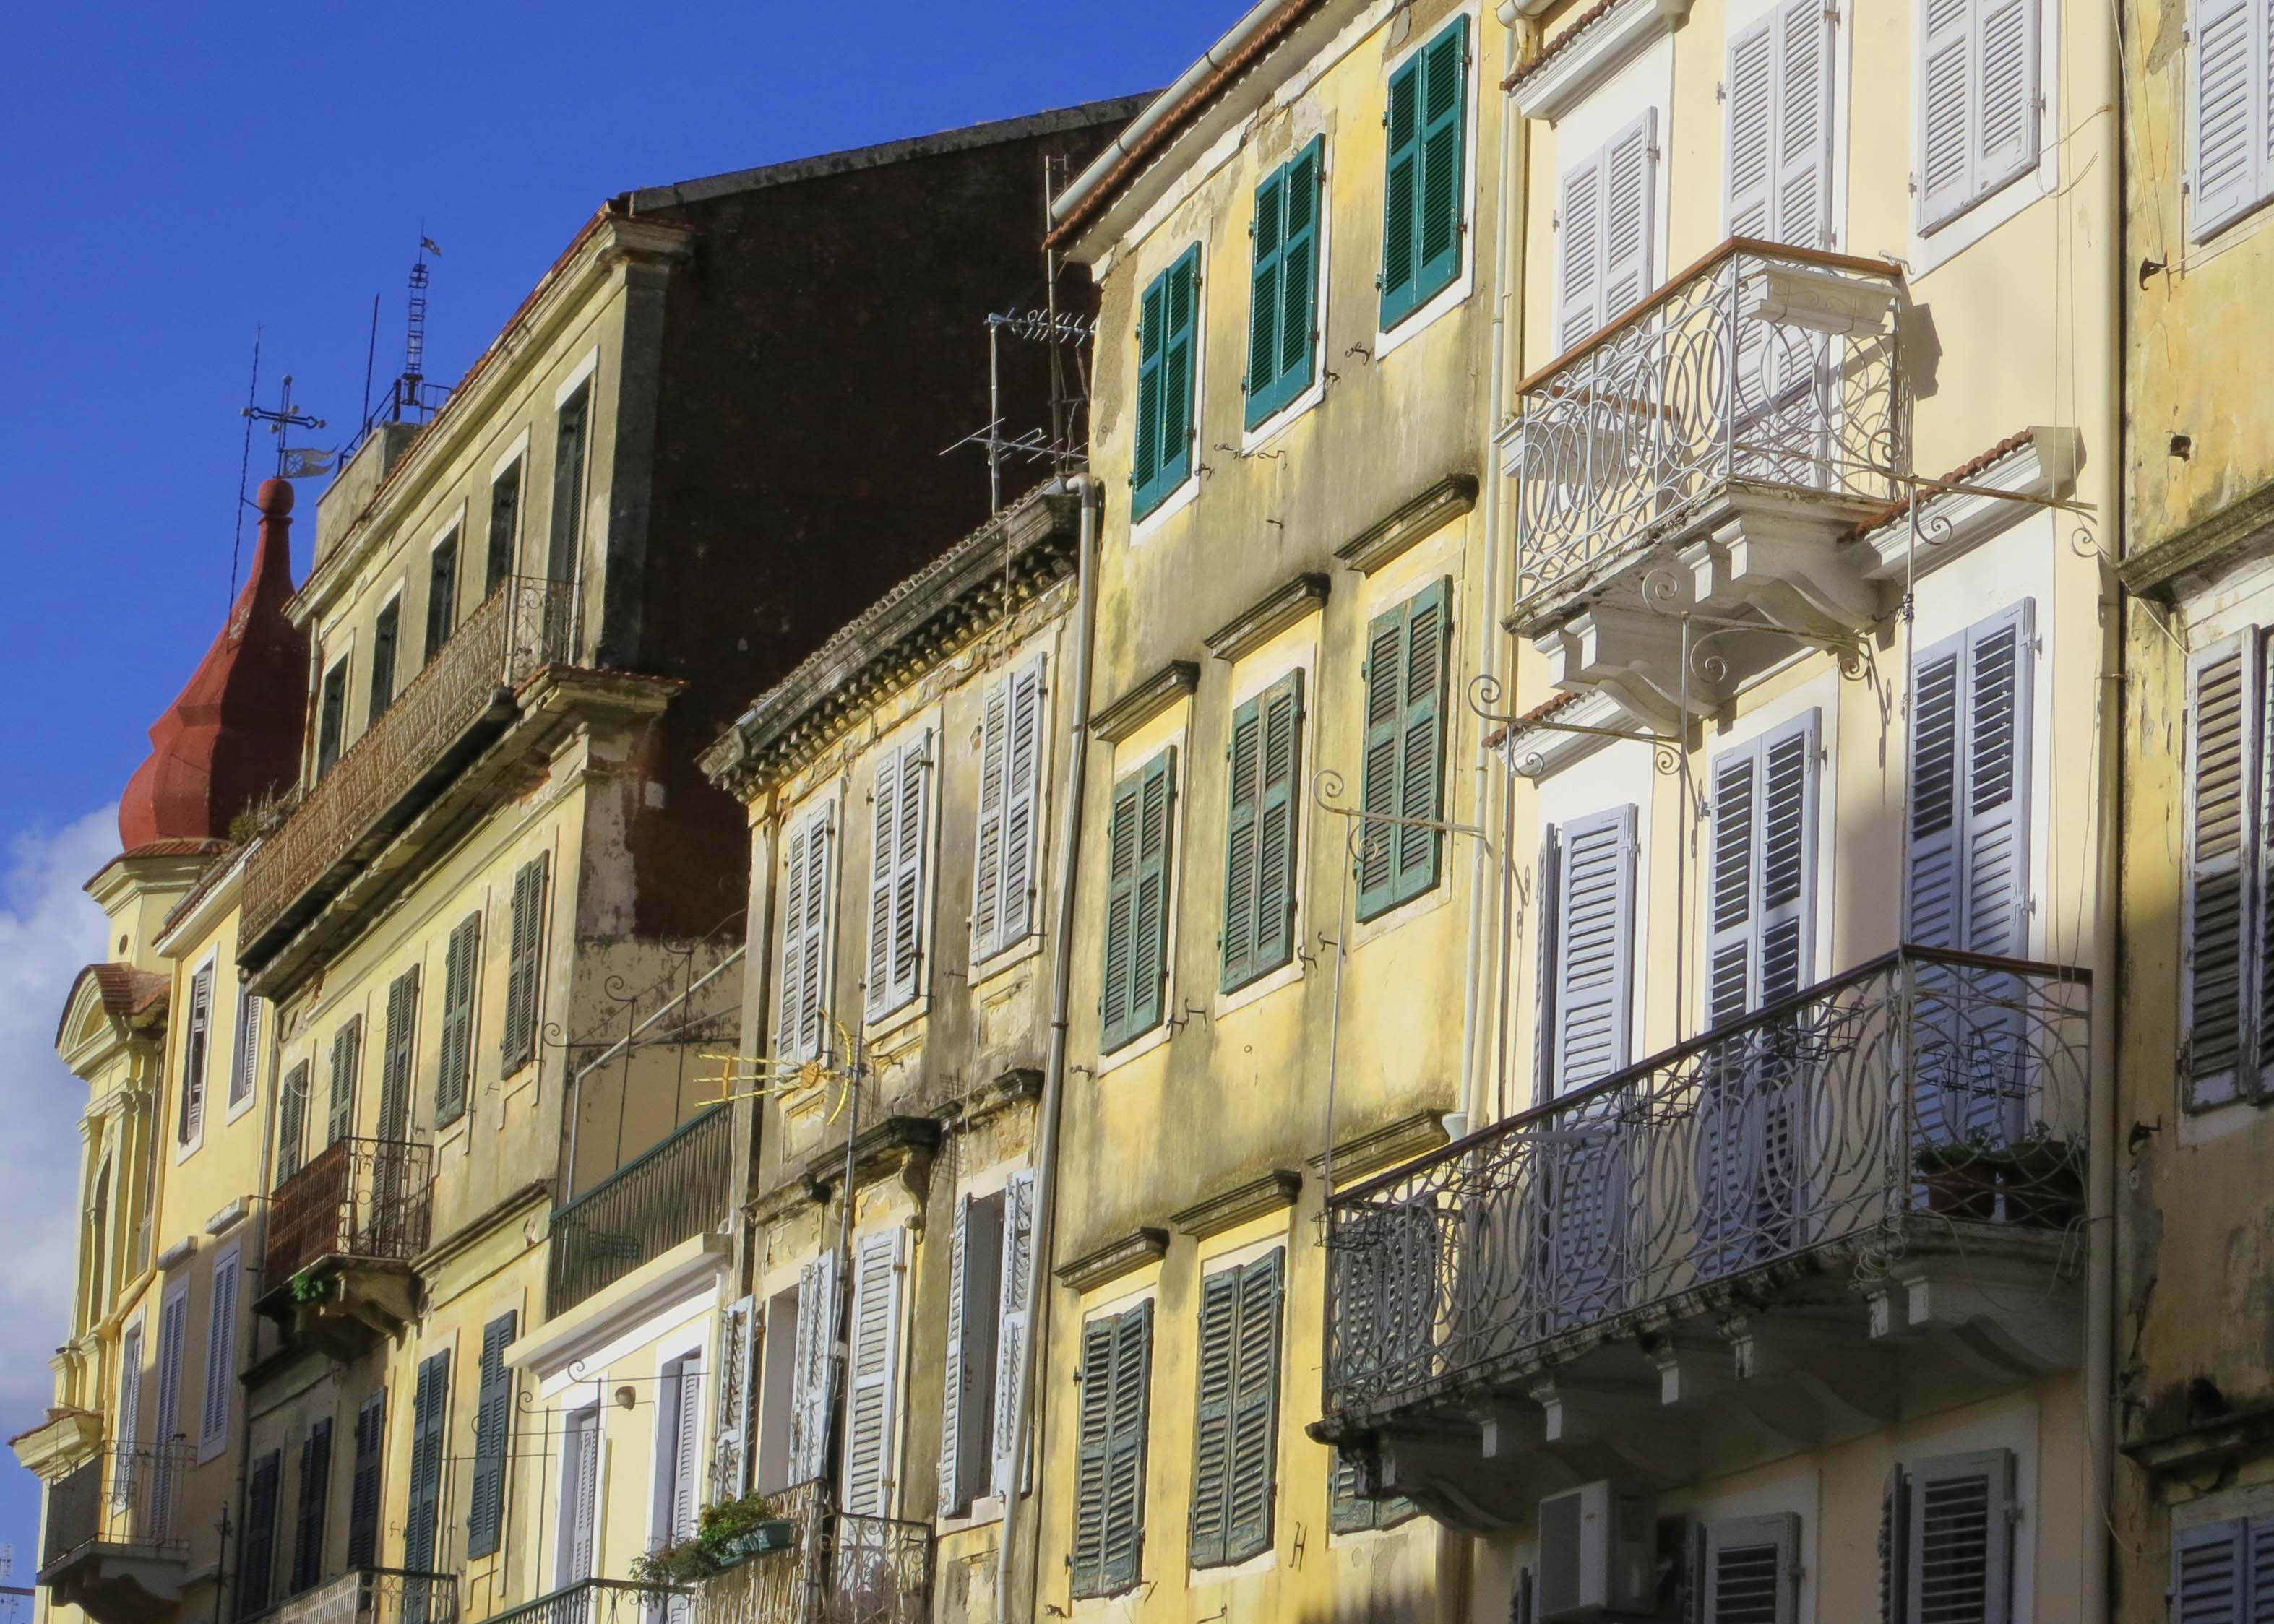 Another view of Corfu buildings with their shutters and balconies.